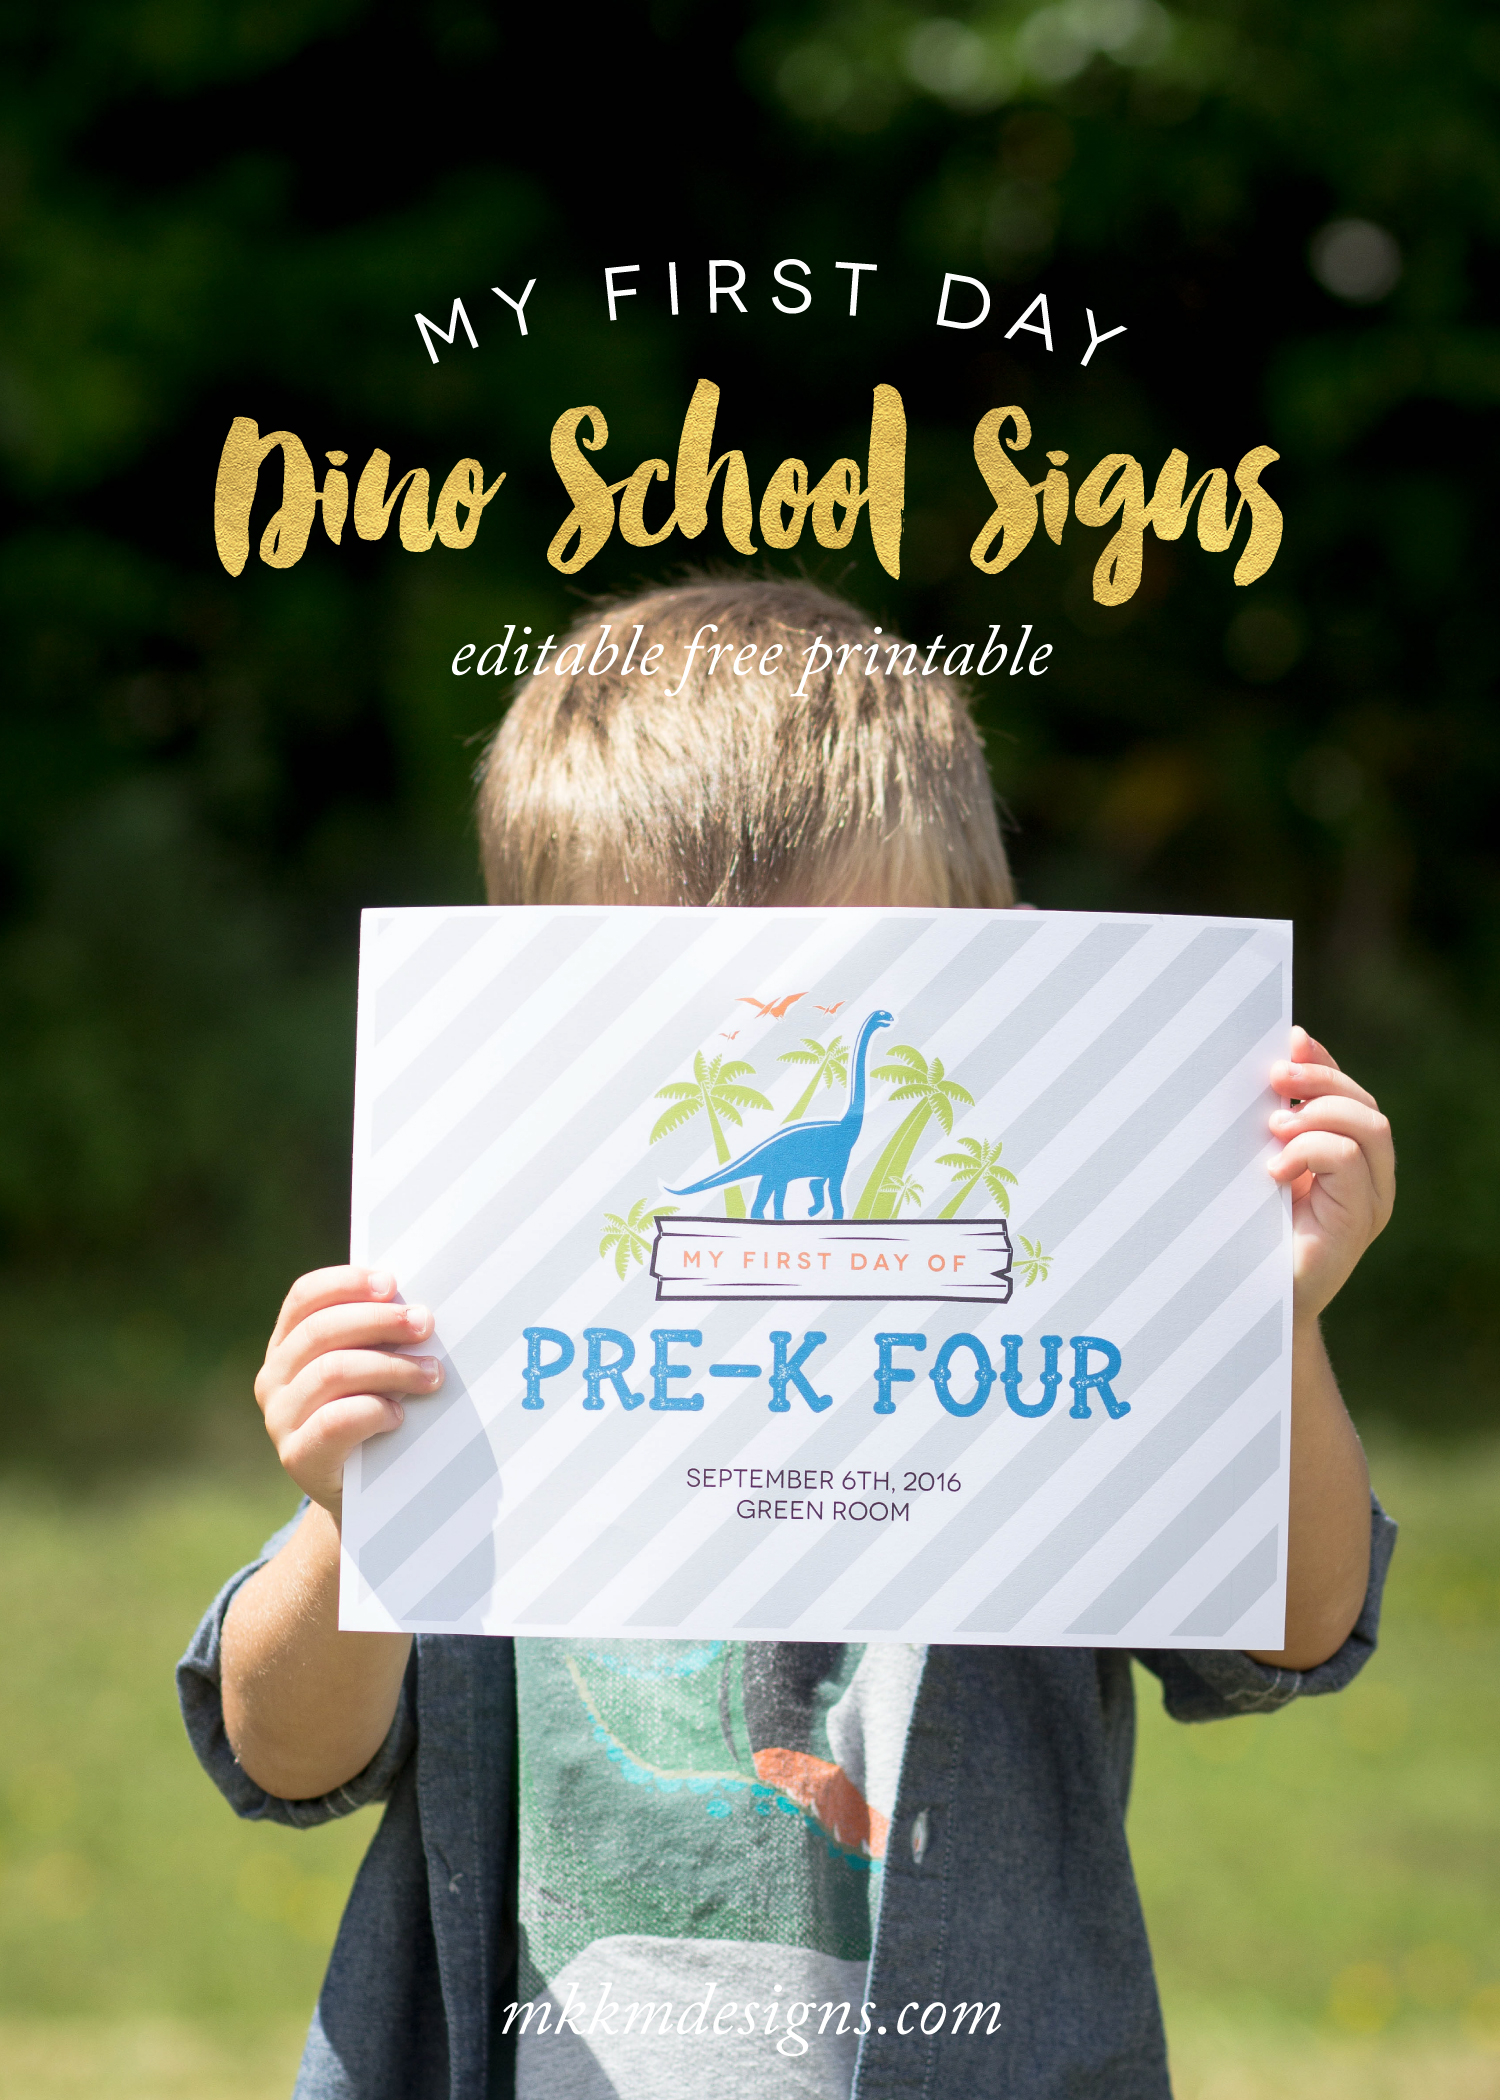 My First Day of School Dinosaur sign. Free printables from shopmkkm.com